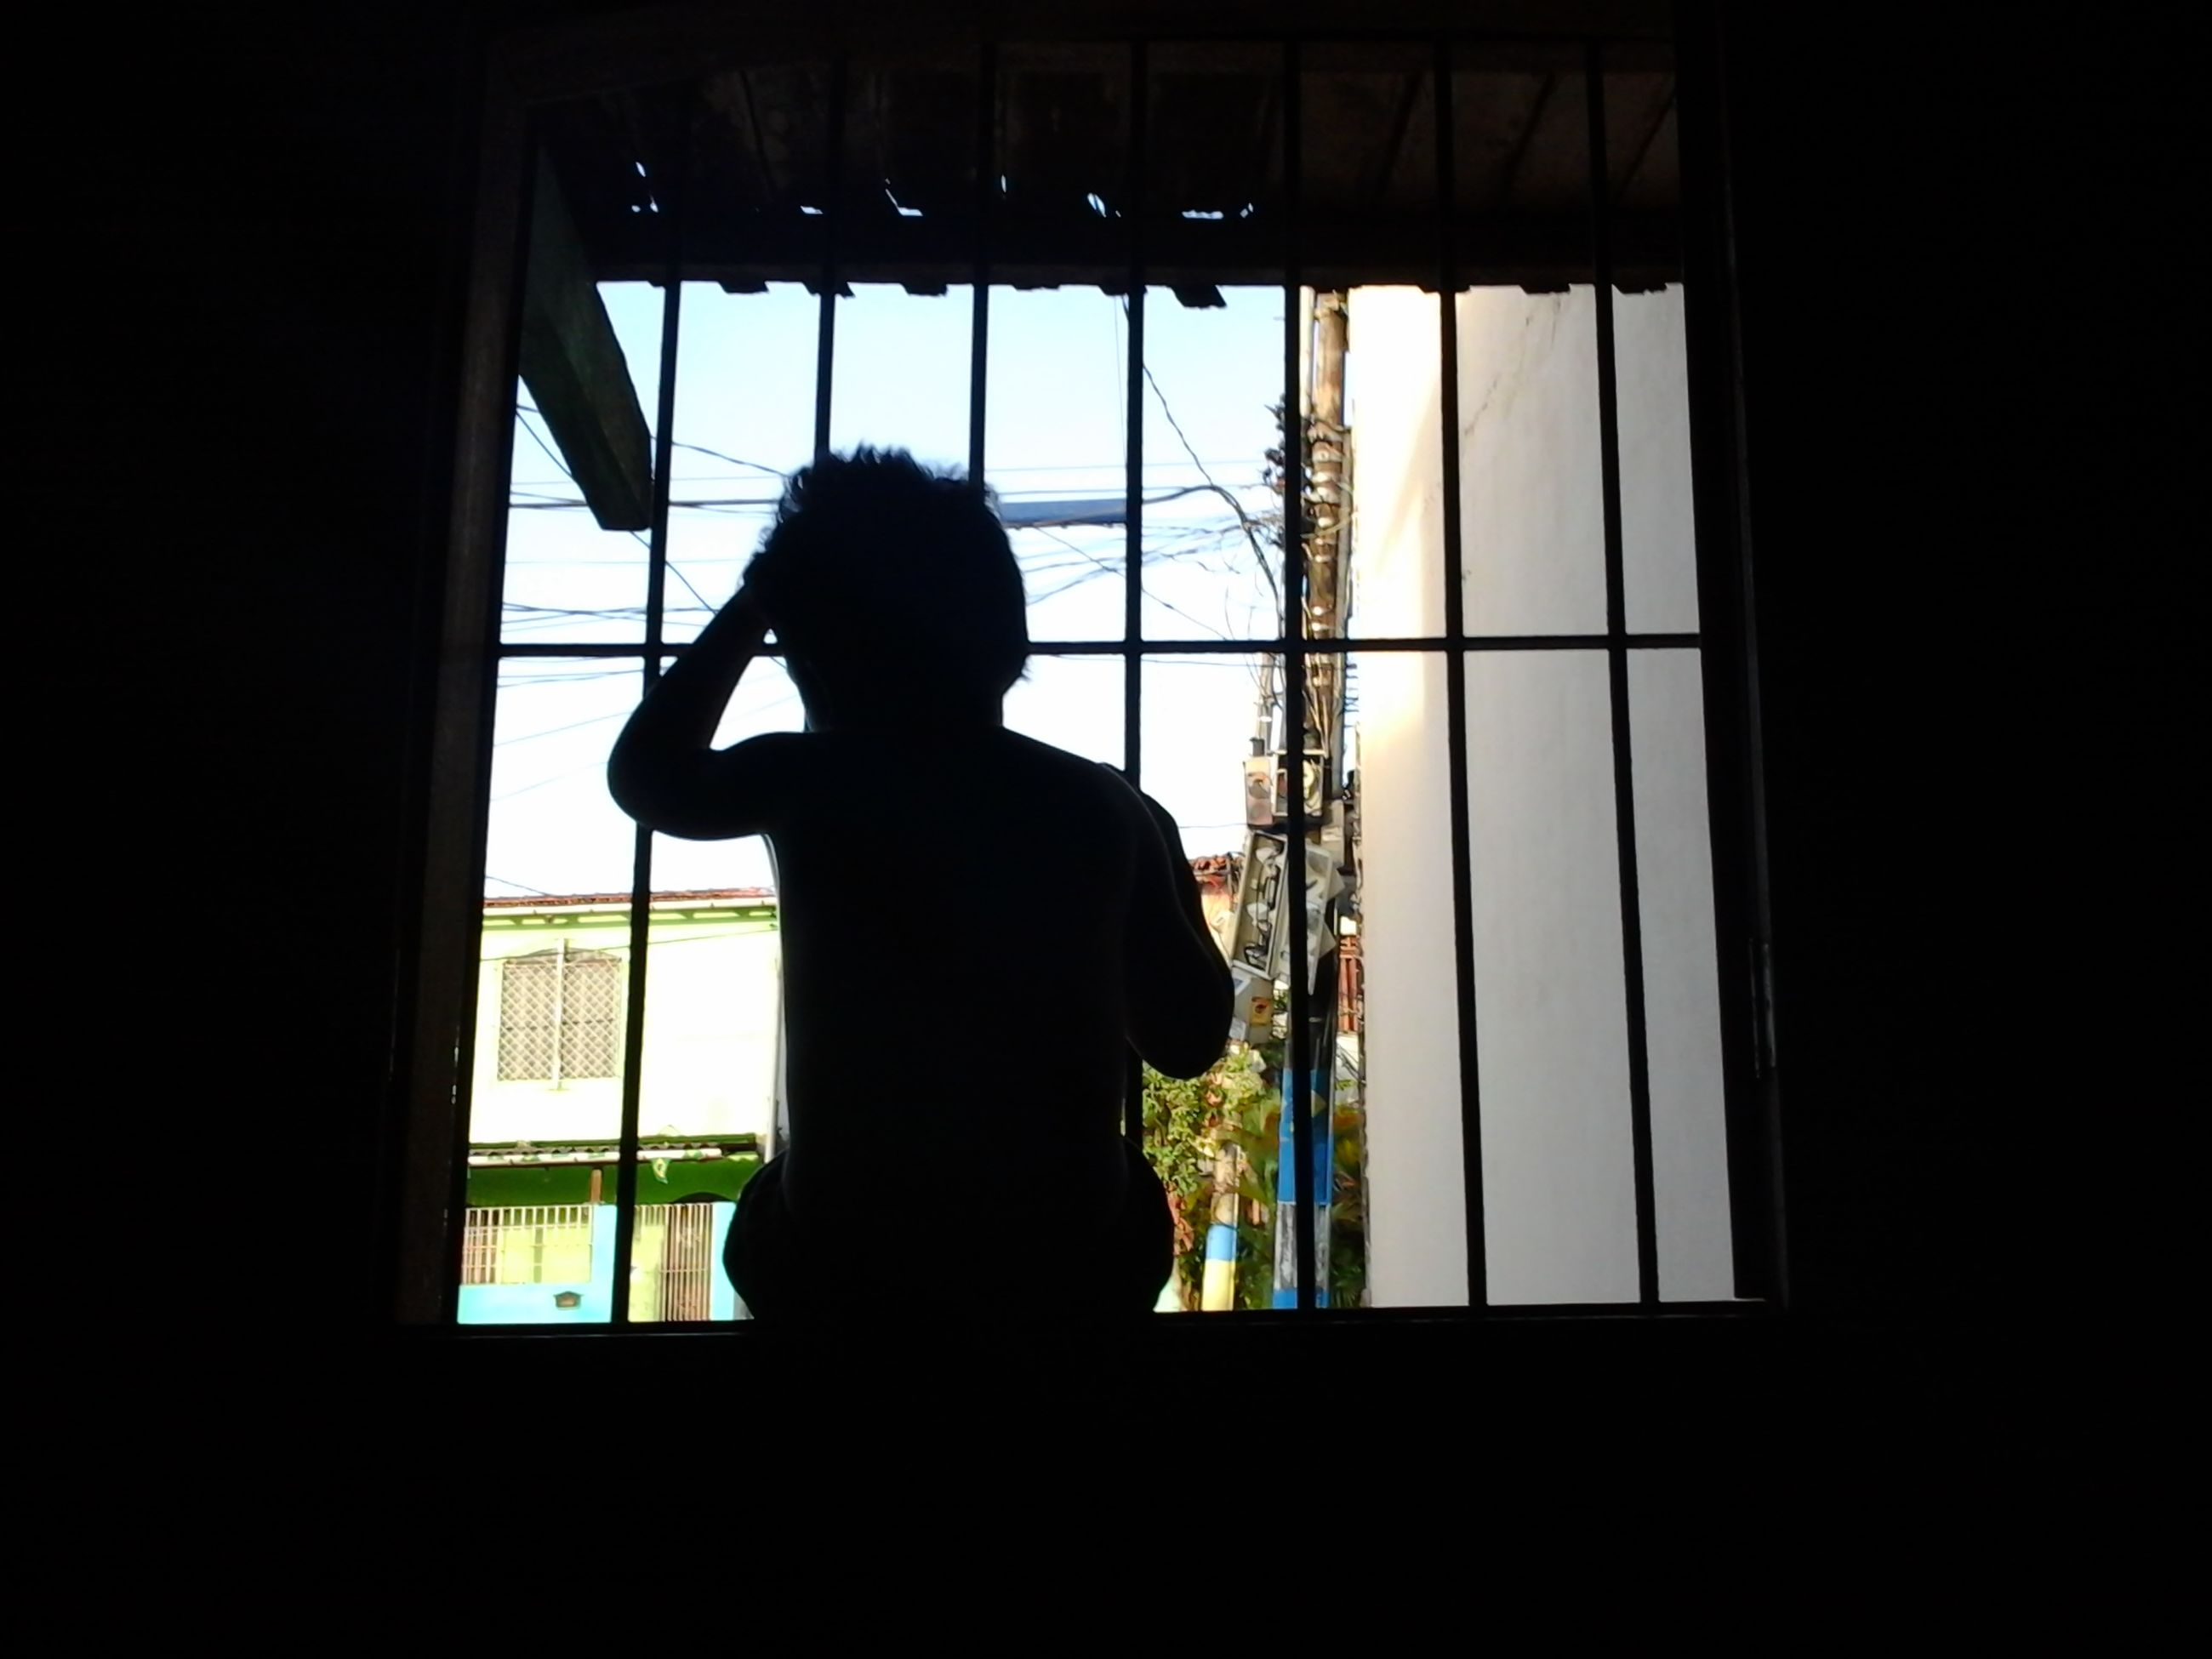 indoors, window, silhouette, standing, glass - material, transparent, lifestyles, full length, home interior, three quarter length, looking through window, rear view, leisure activity, side view, dark, low angle view, built structure, day